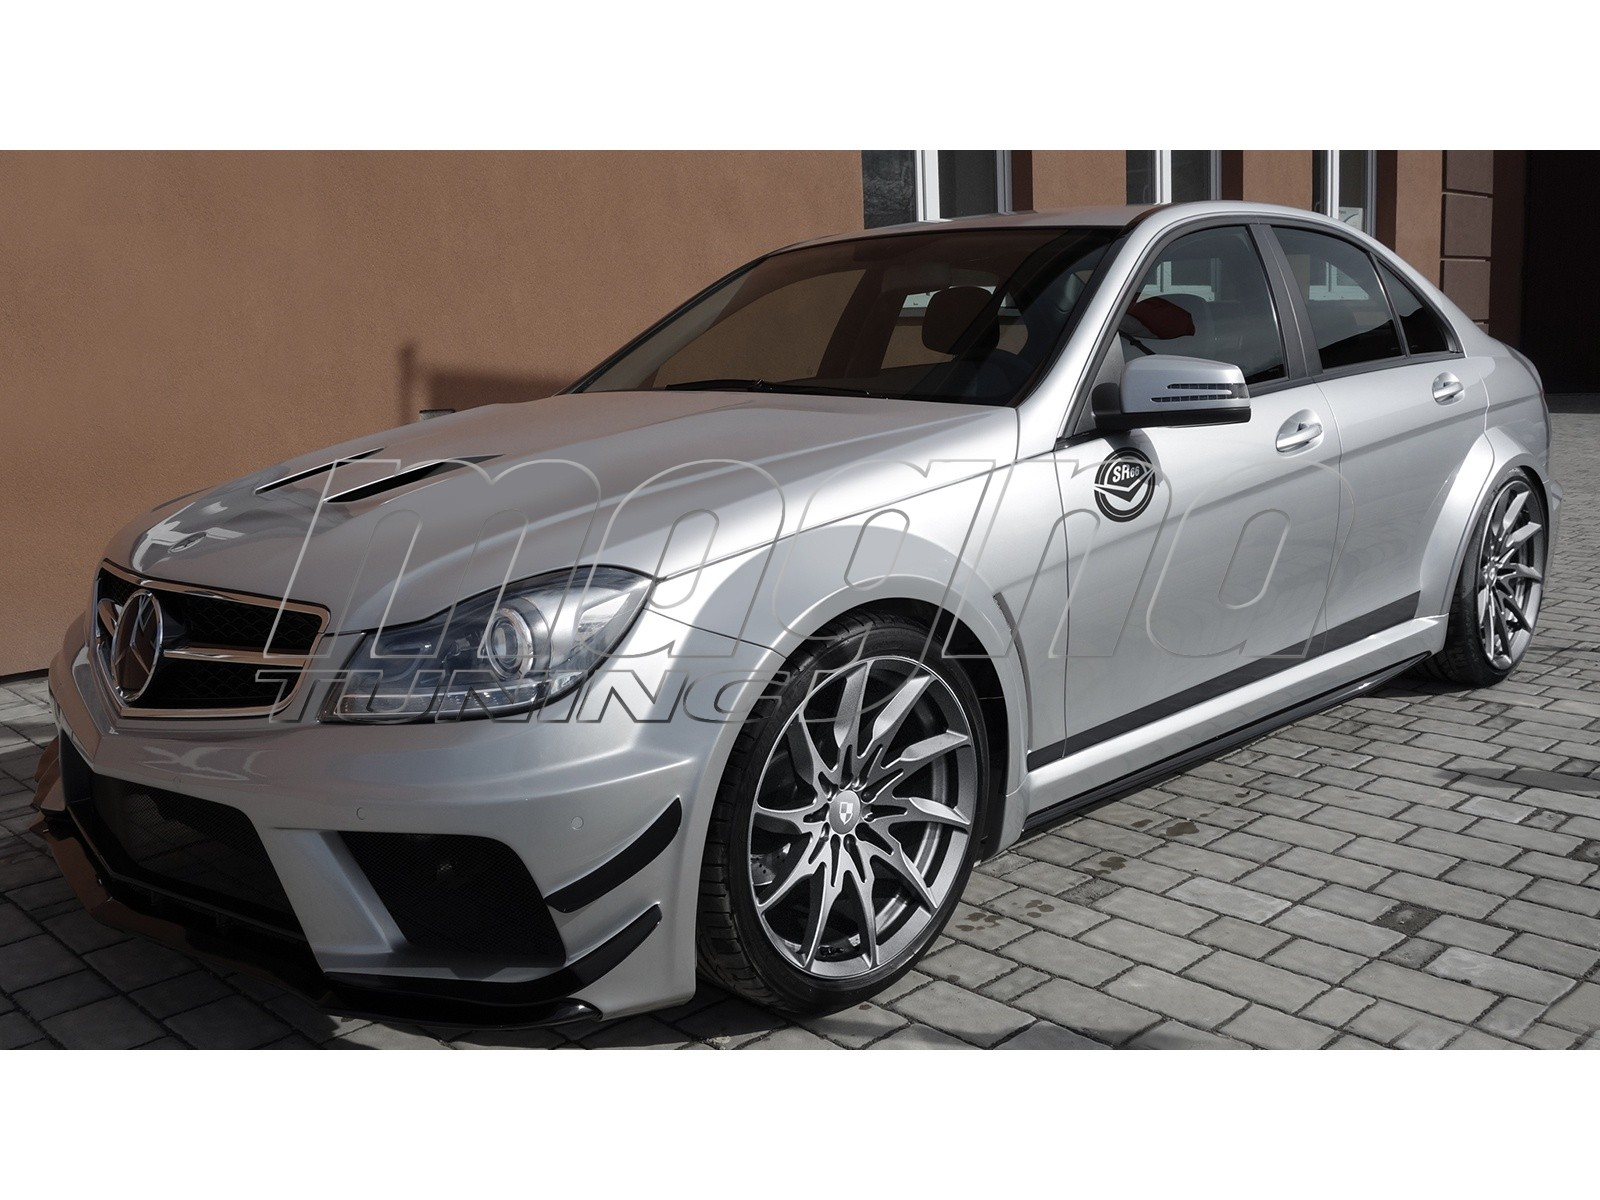 Mercedes c class w204 facelift sonic wide body kit for Mercedes benz c300 body kit